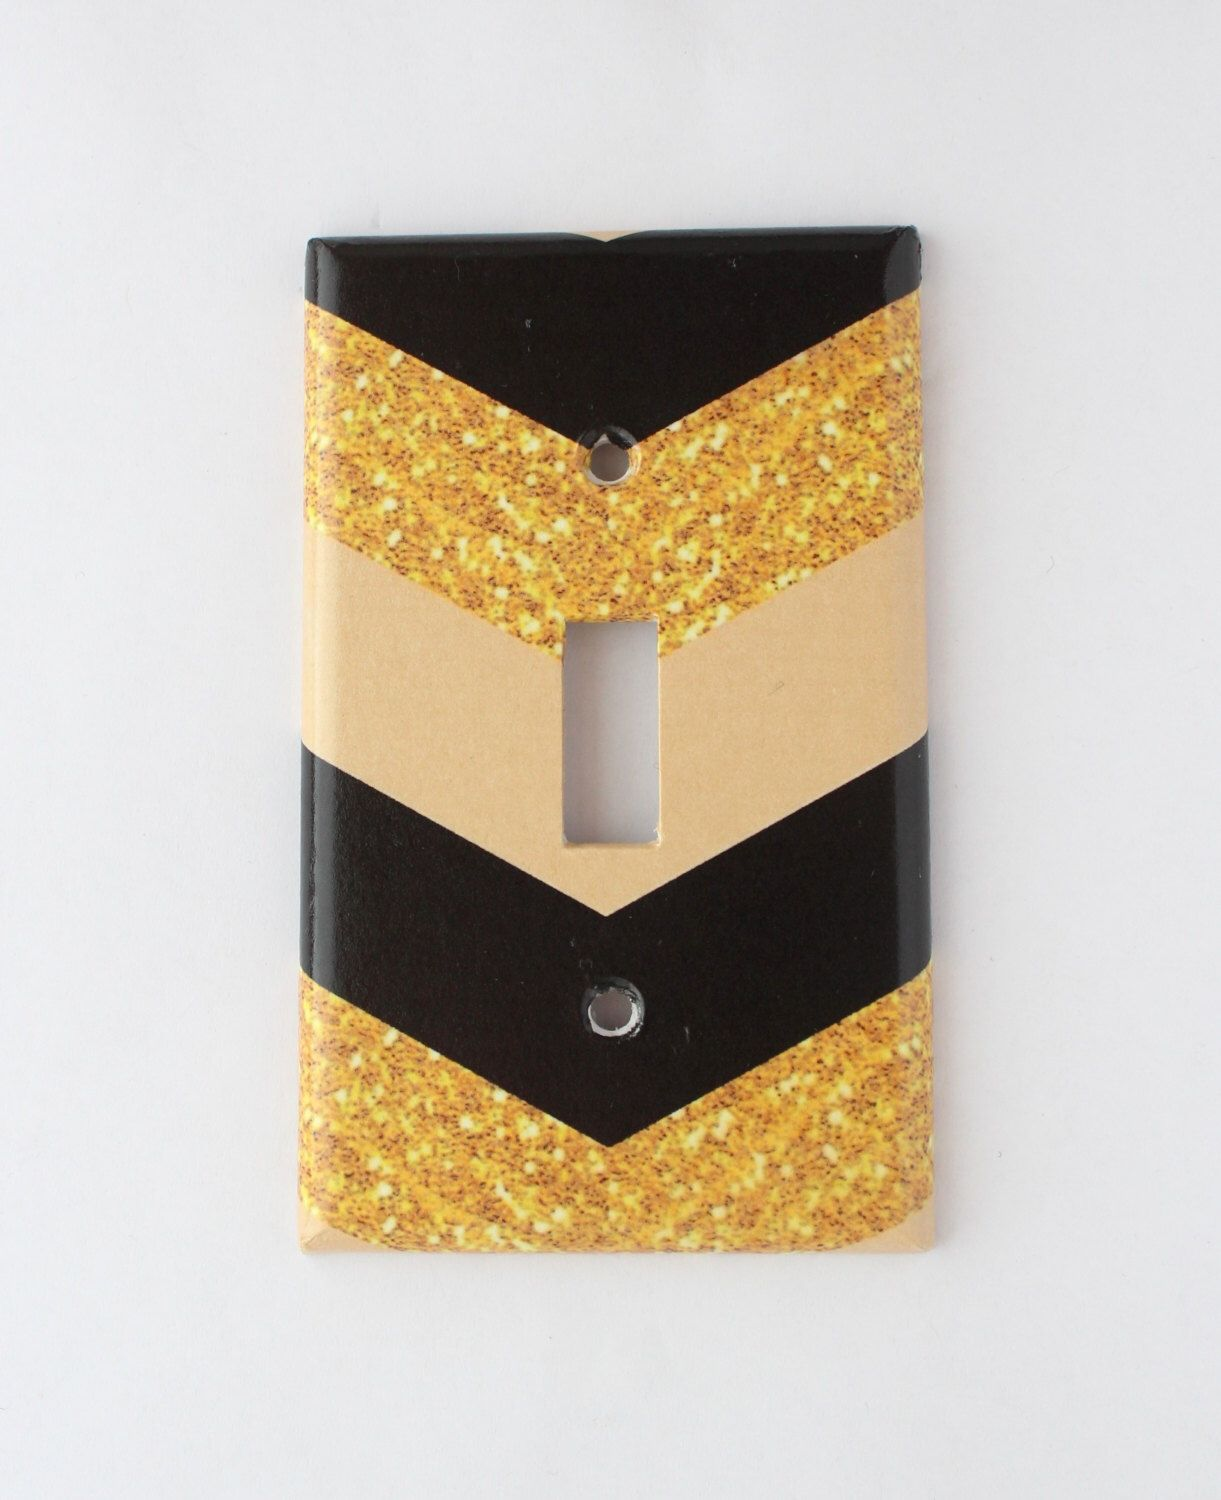 Gold Glitter paper chevron black tan light light switch cover wall ...